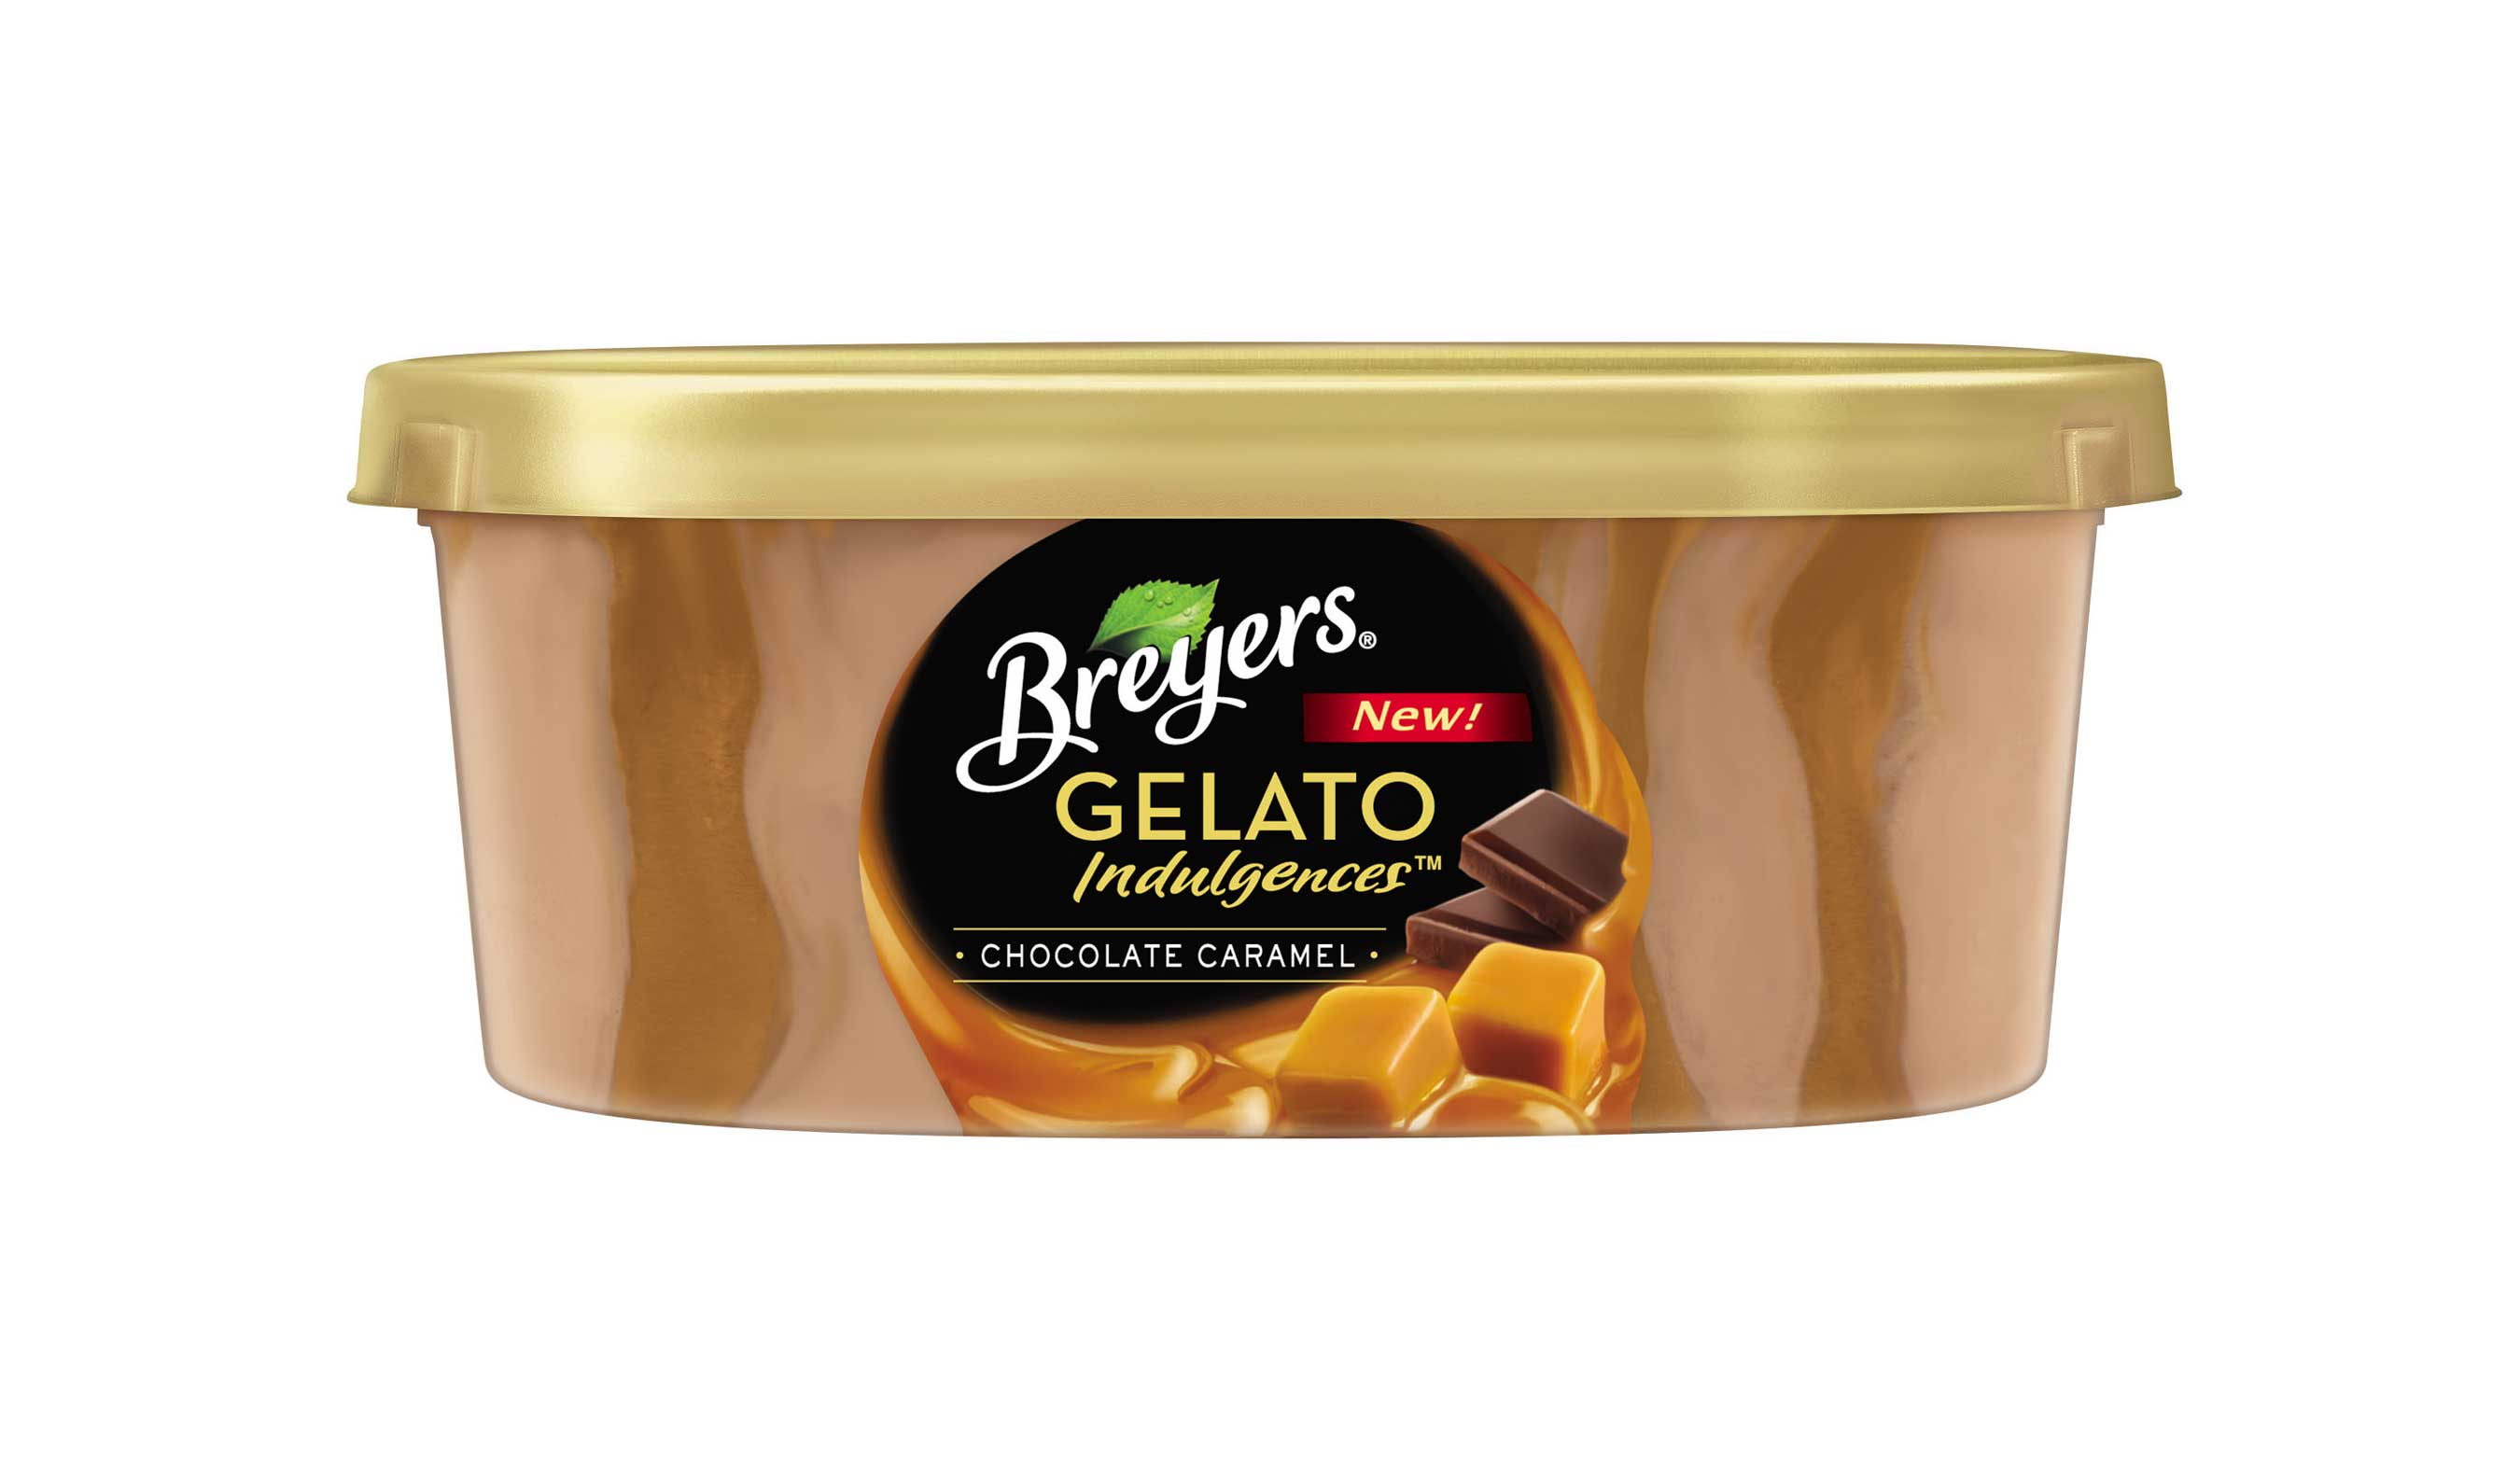 Breyers® Gelato Indulgences™ Chocolate Caramel, featuring chocolate gelato with luscious caramel sauce and gourmet chocolate curls, will be available this April.